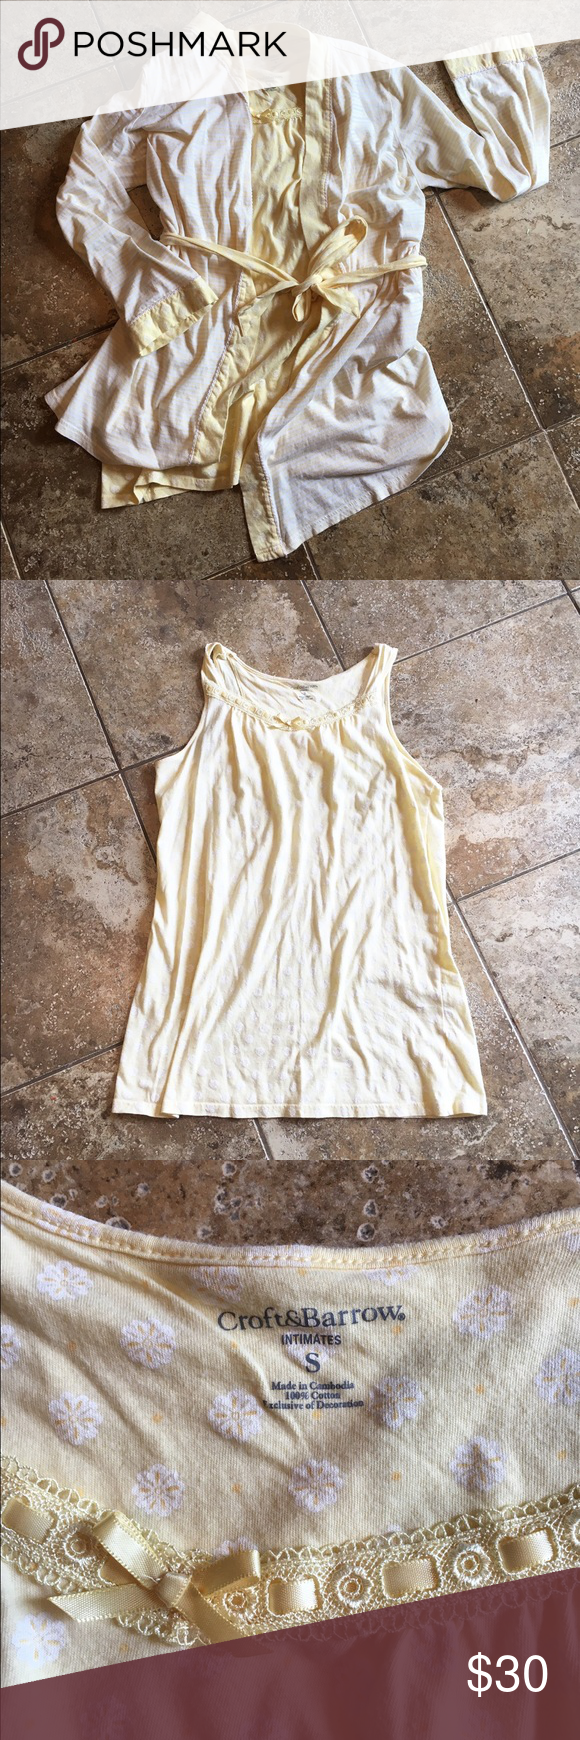 Women's light yellow chemise & robe set, Small Croft & Barrow brand, size small. Women's light yellow sleeveless chemise with dainty white floral pattern and lace trim. Coordinating robe is light yellow and white small stripes, yellow trim, tie waist and POCKETS! Both size small, could fit a medium. Very gently used, worn maybe three times. No flaws. EXCELLENT CONDITION! Croft & Barrow Intimates & Sleepwear Chemises & Slips